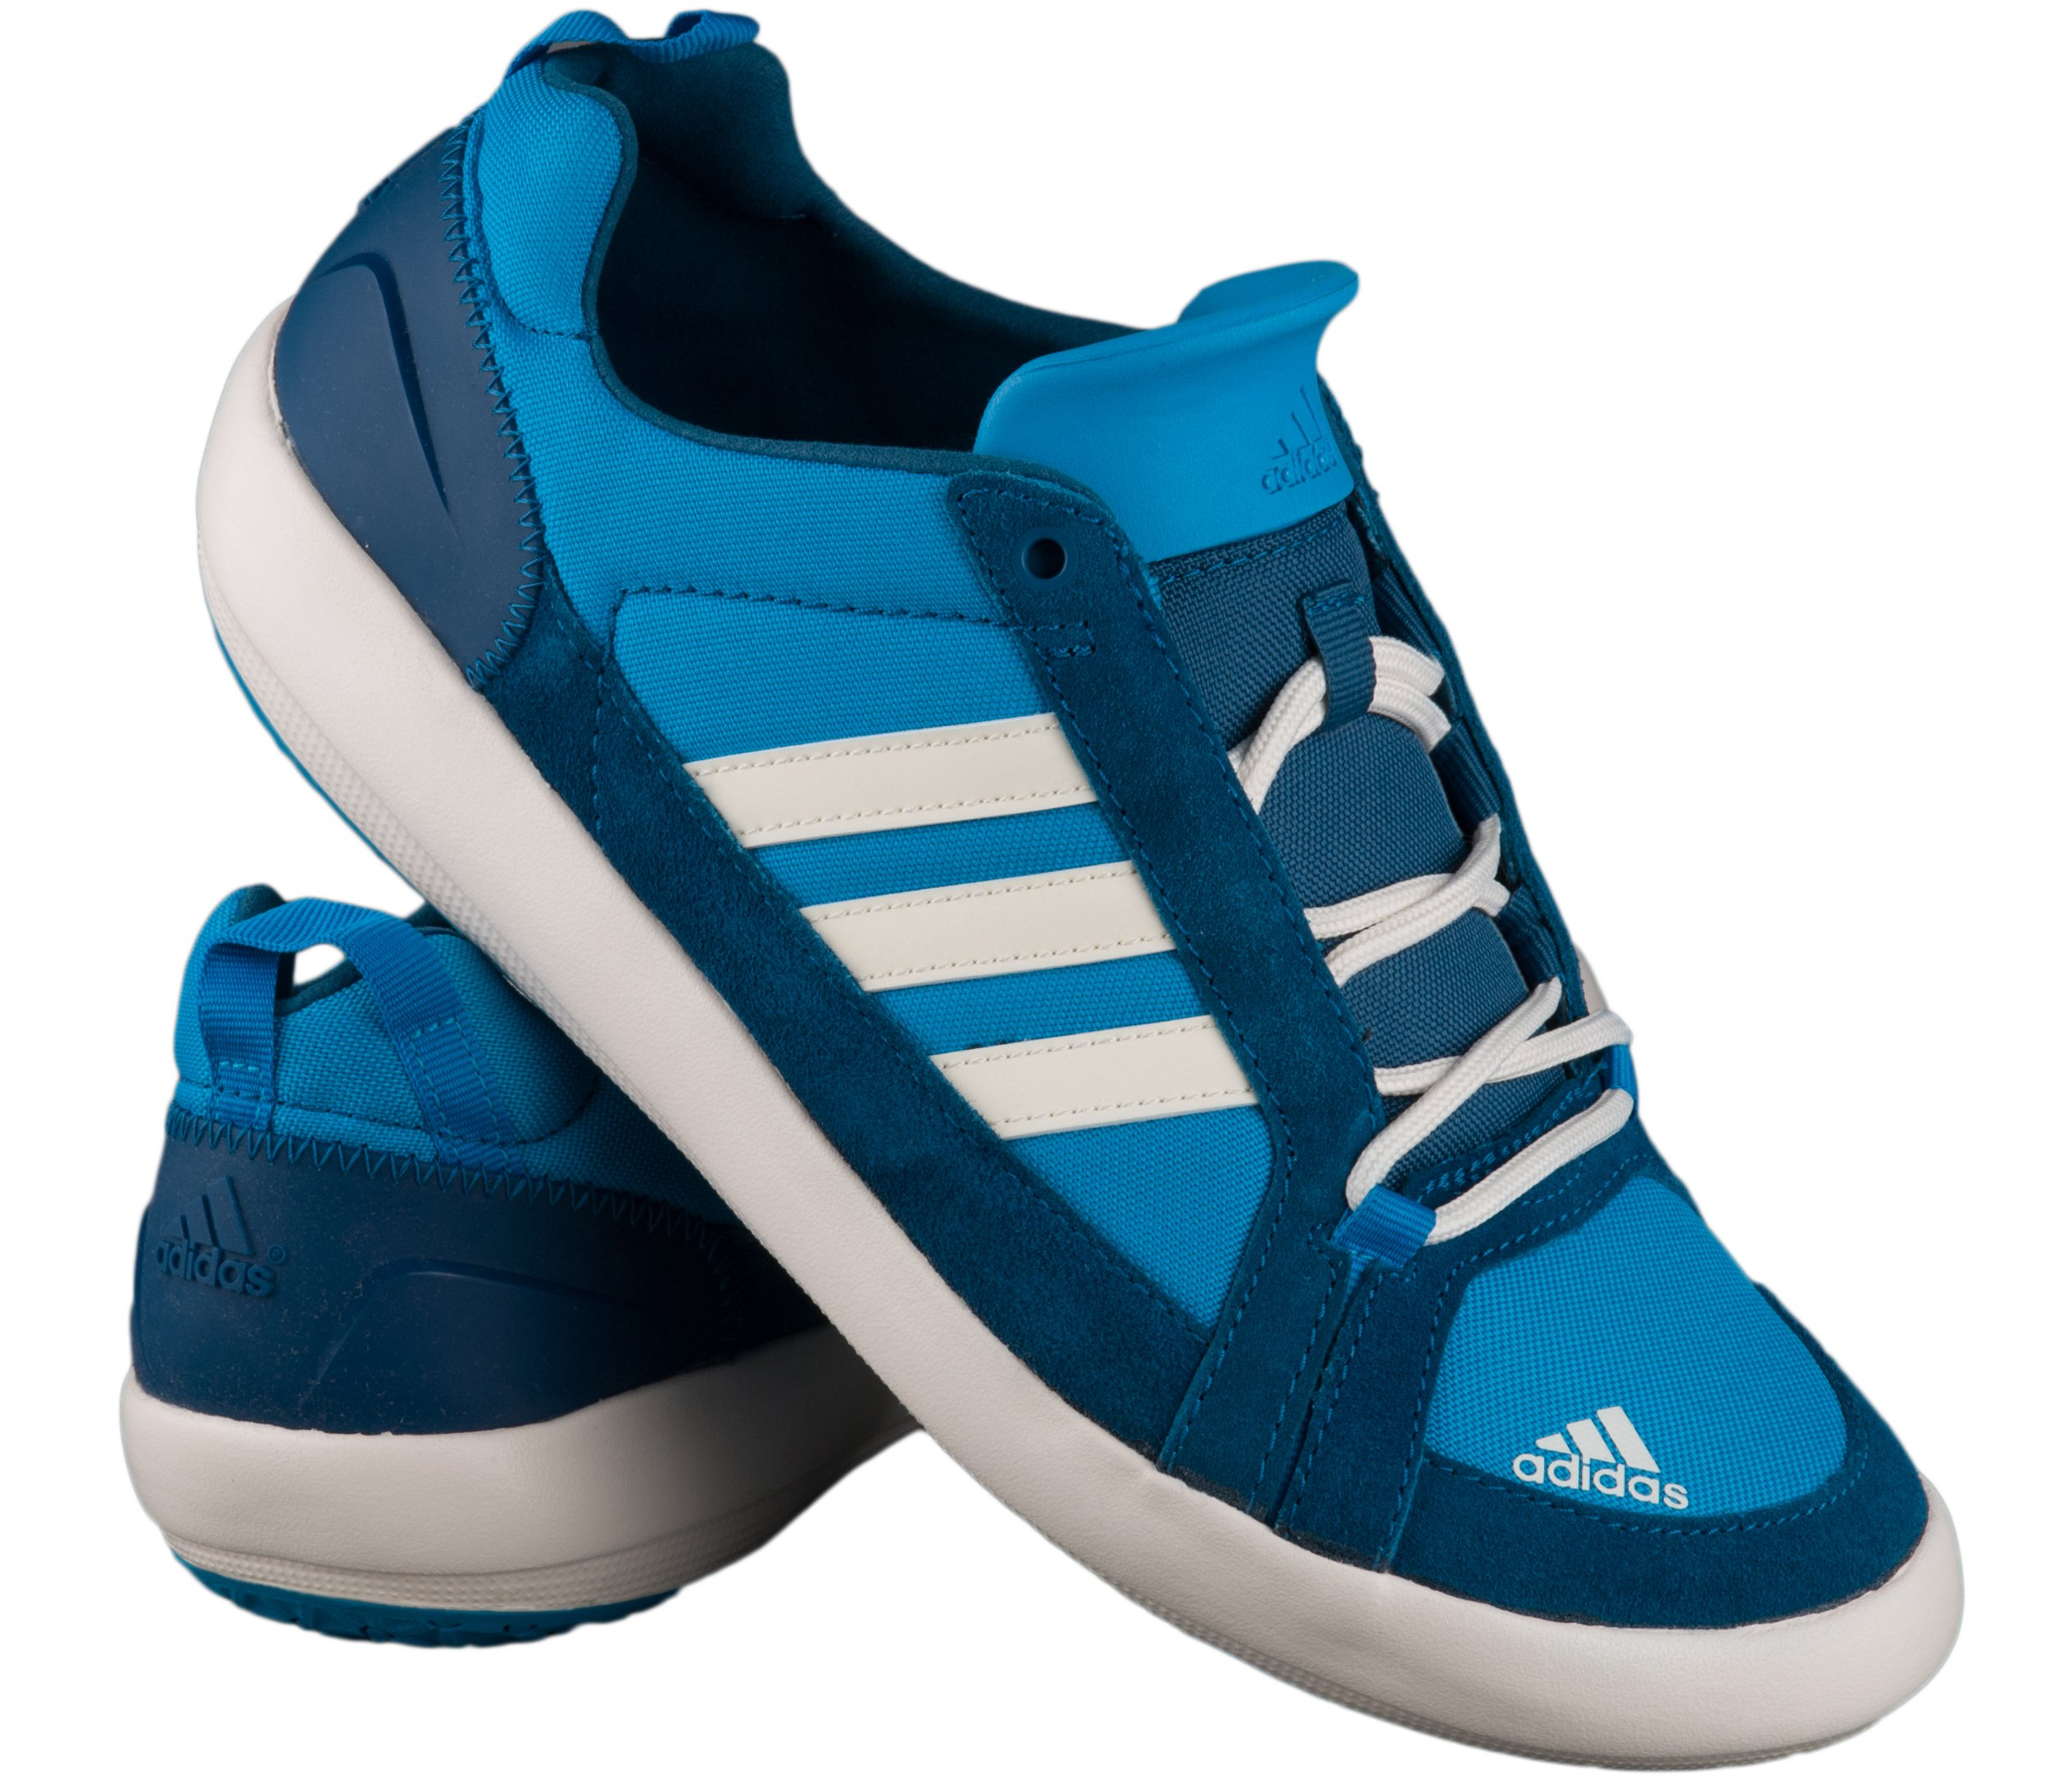 BUTY ADIDAS BOAT LACE DLX 40 OUTDOOR D66754 6800067916